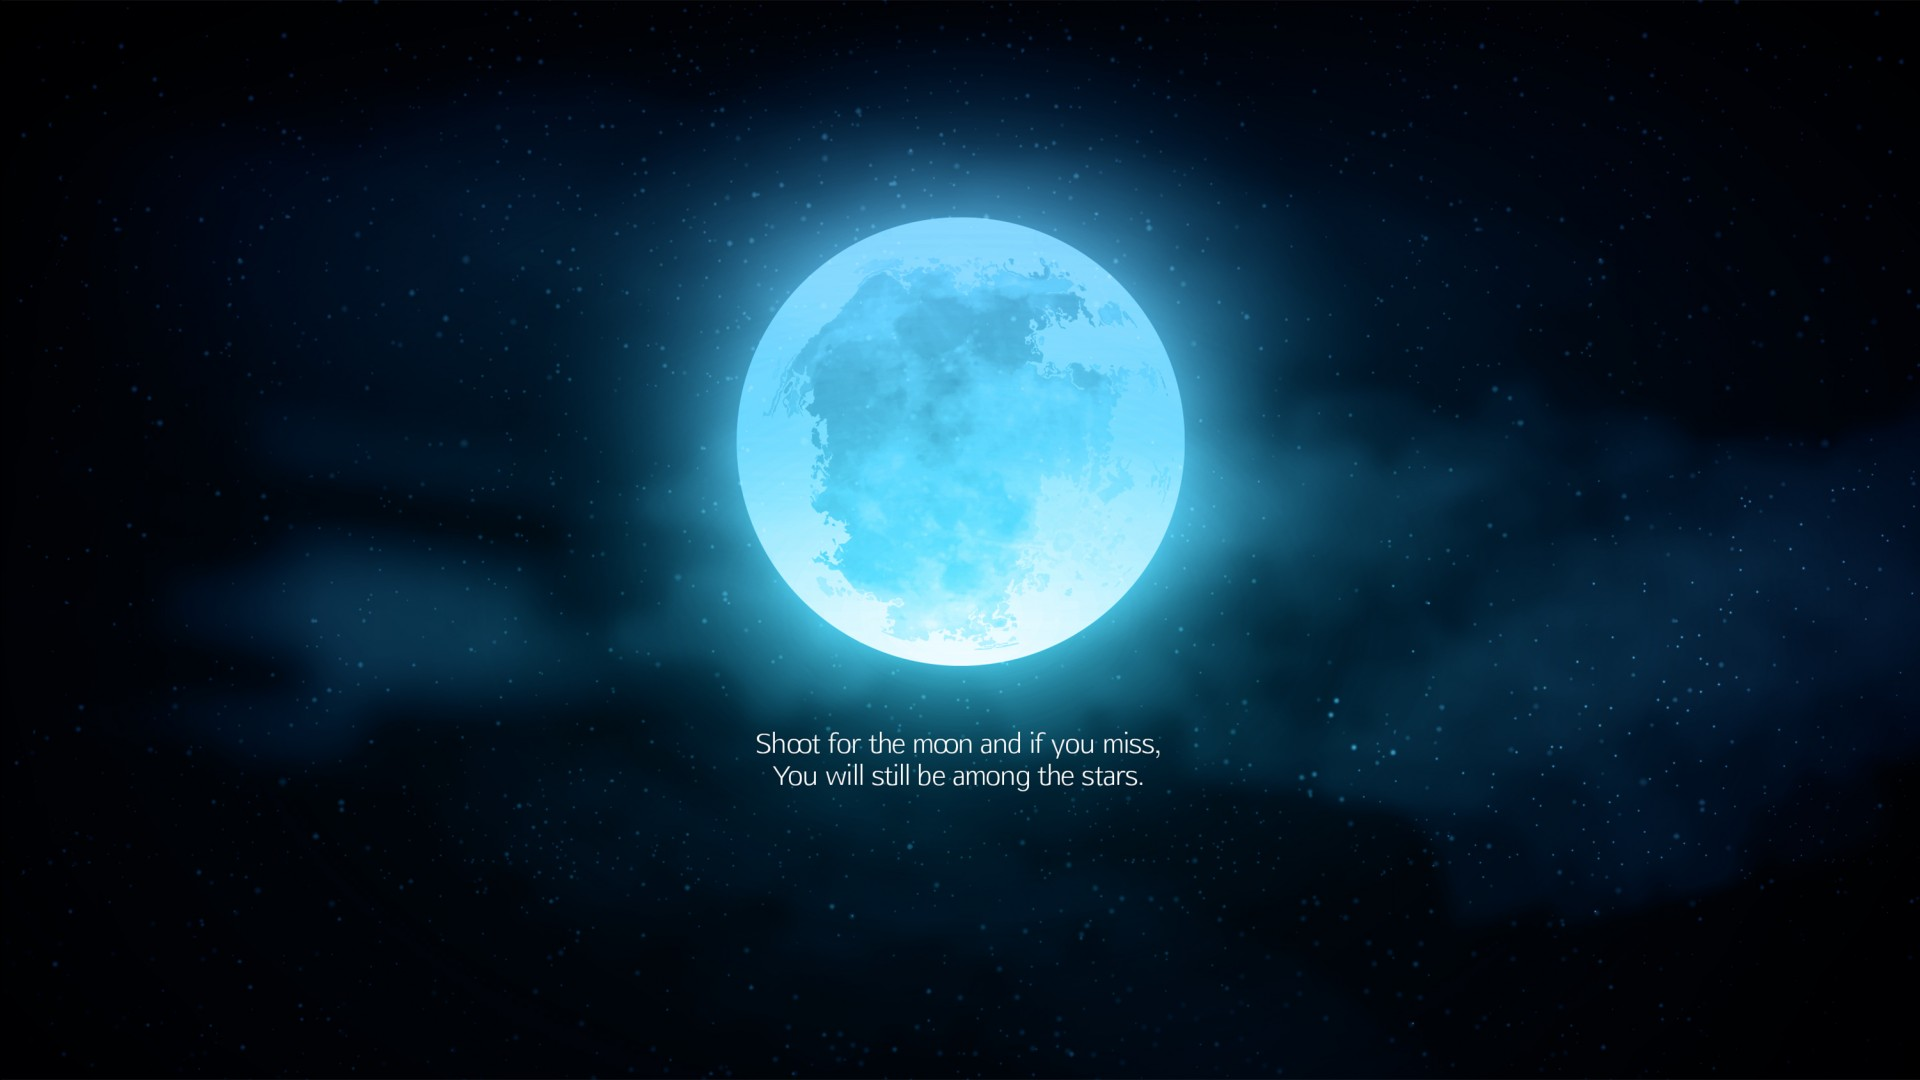 Wallpaper Windows 10 3d Shoot For Moon Quote Wallpapers Hd Wallpapers Id 24391